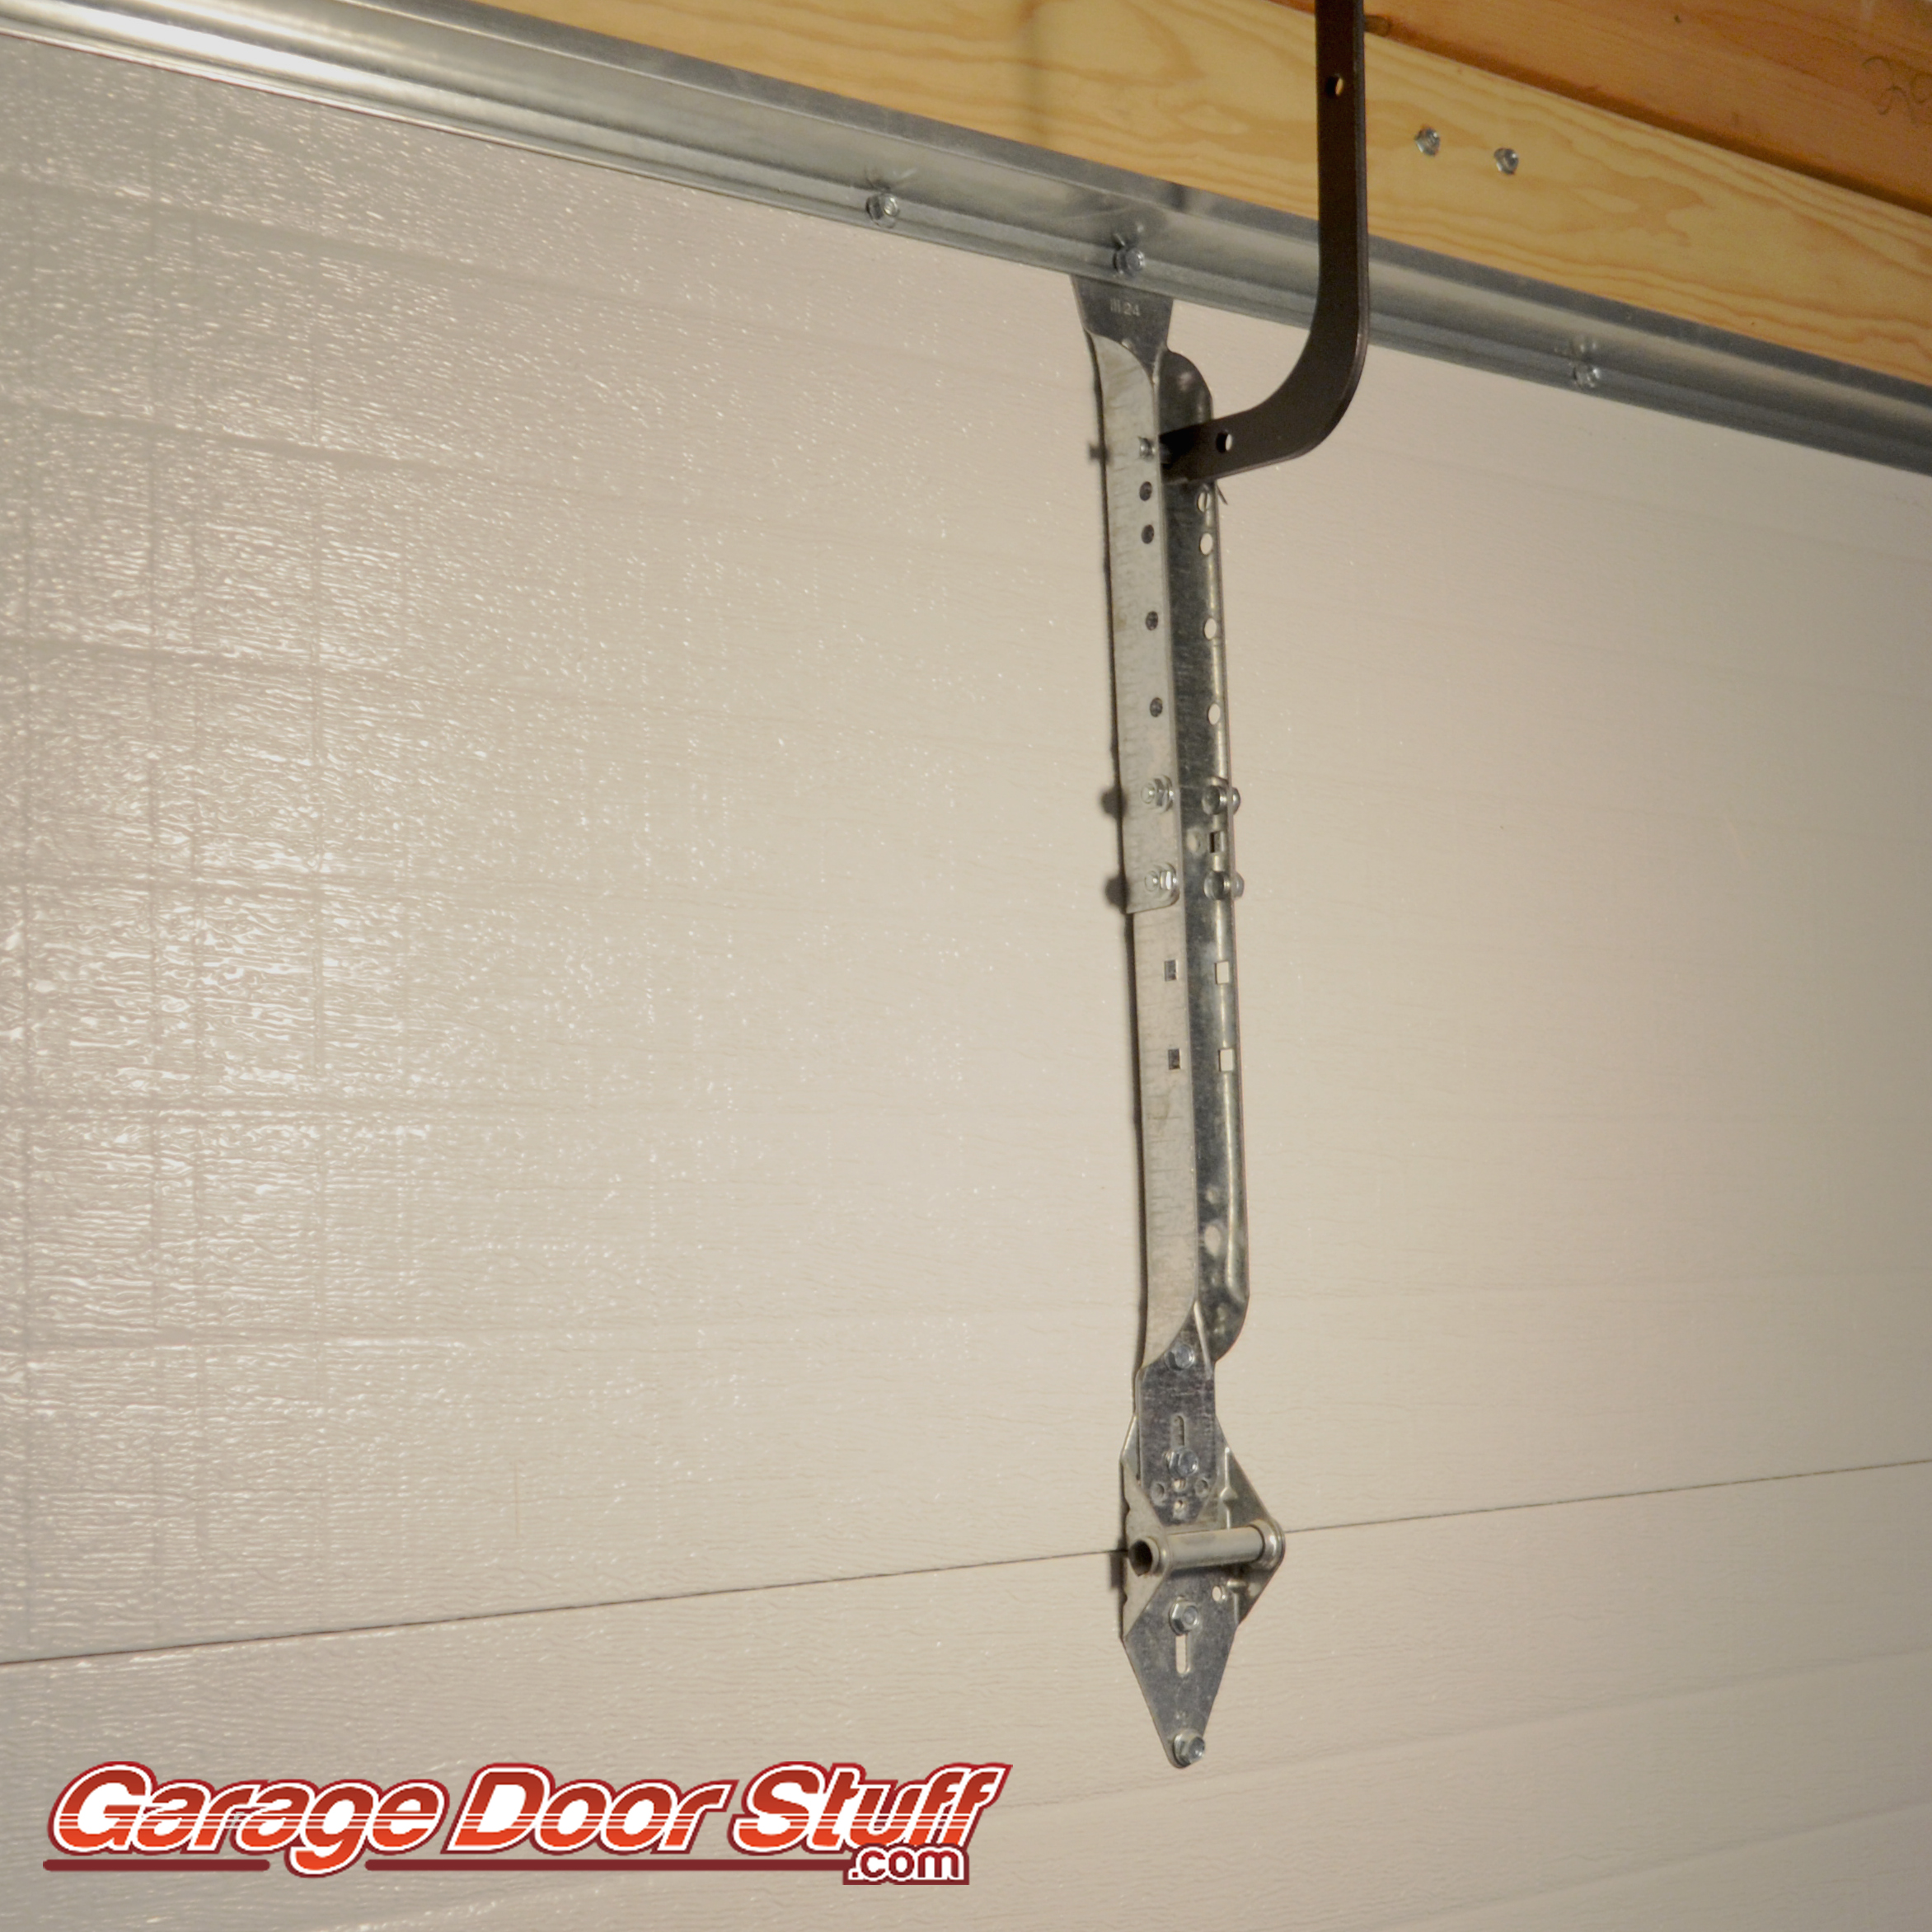 Garage door opener support bracket gallery door design for Selecting a garage door opener